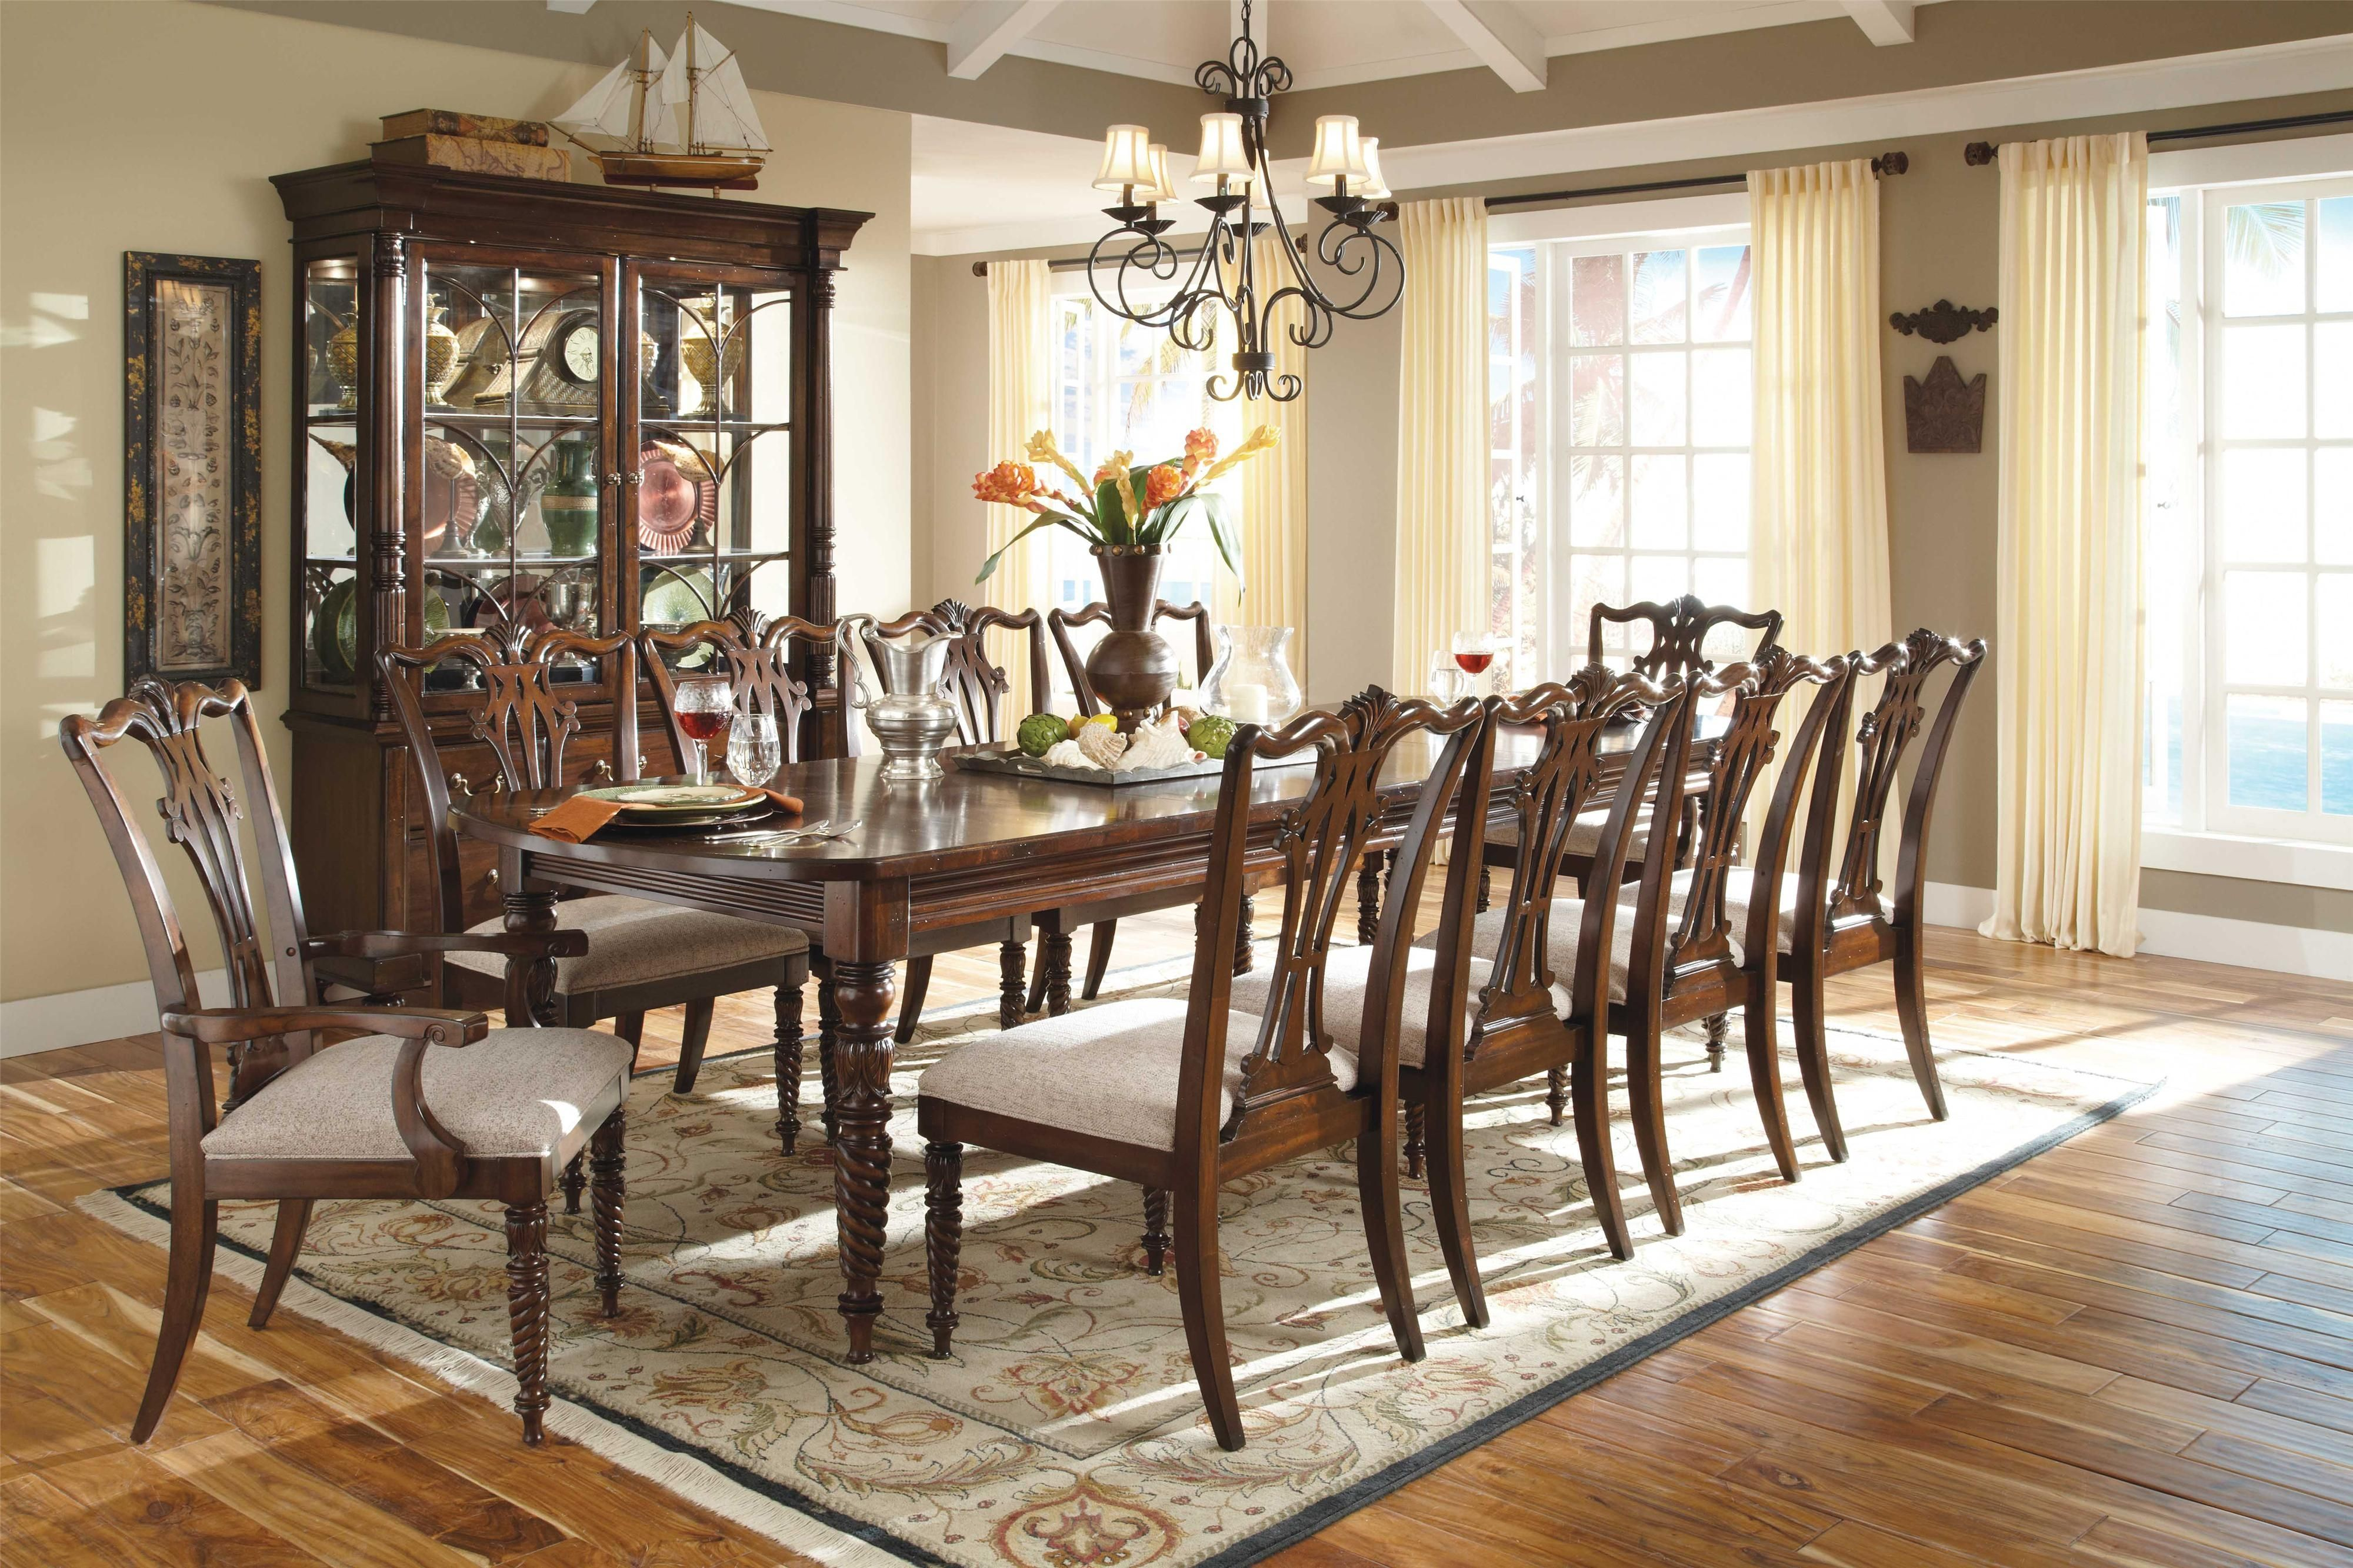 Formal Dining Room Sets Seats 10  Httpfmufpi  Pinterest Mesmerizing Dining Room Tables That Seat 10 Decorating Design